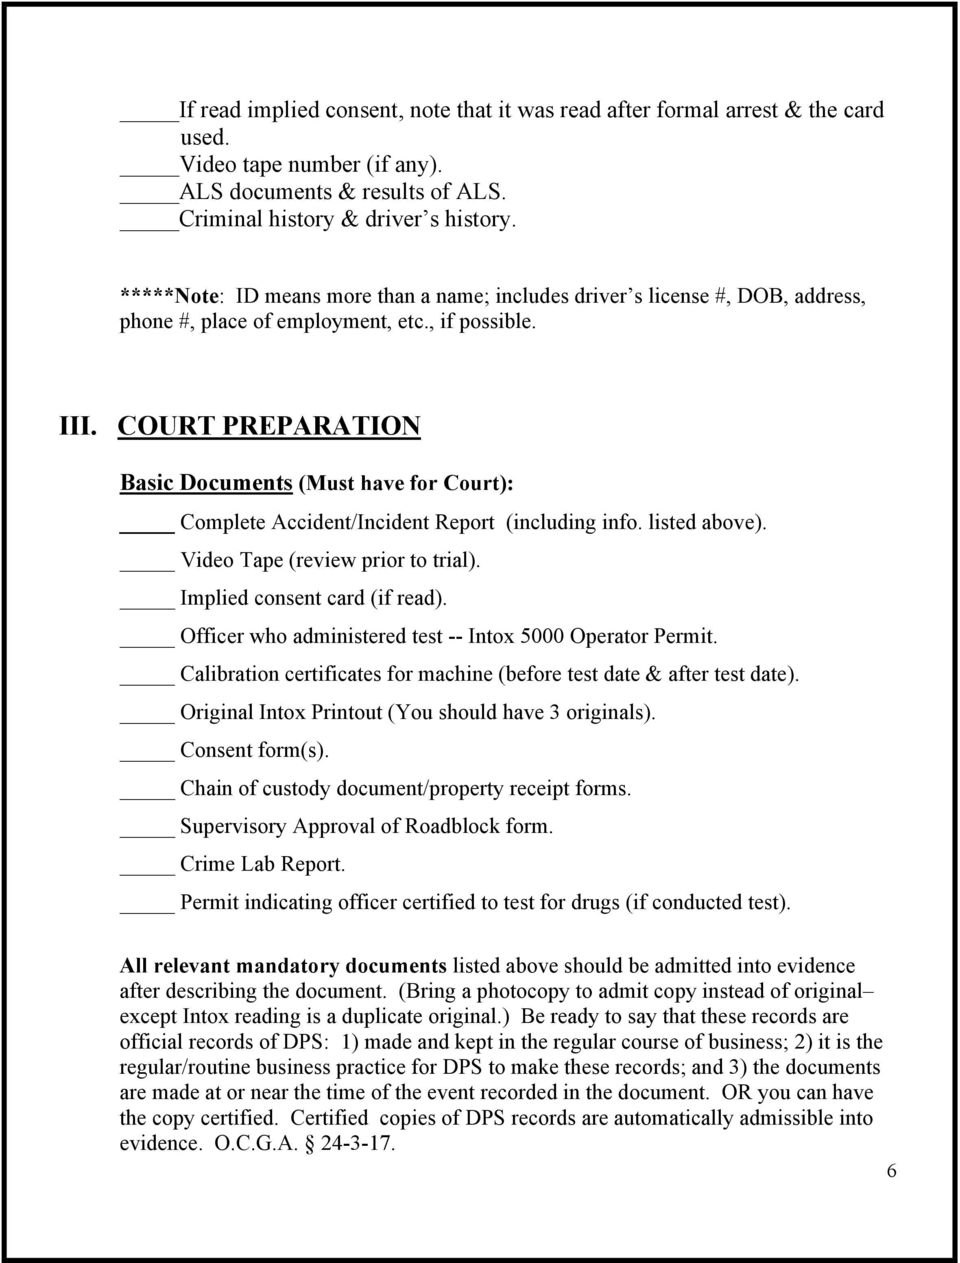 COURT PREPARATION Basic Documents (Must have for Court): Complete Accident/Incident Report (including info. listed above). Video Tape (review prior to trial). Implied consent card (if read).